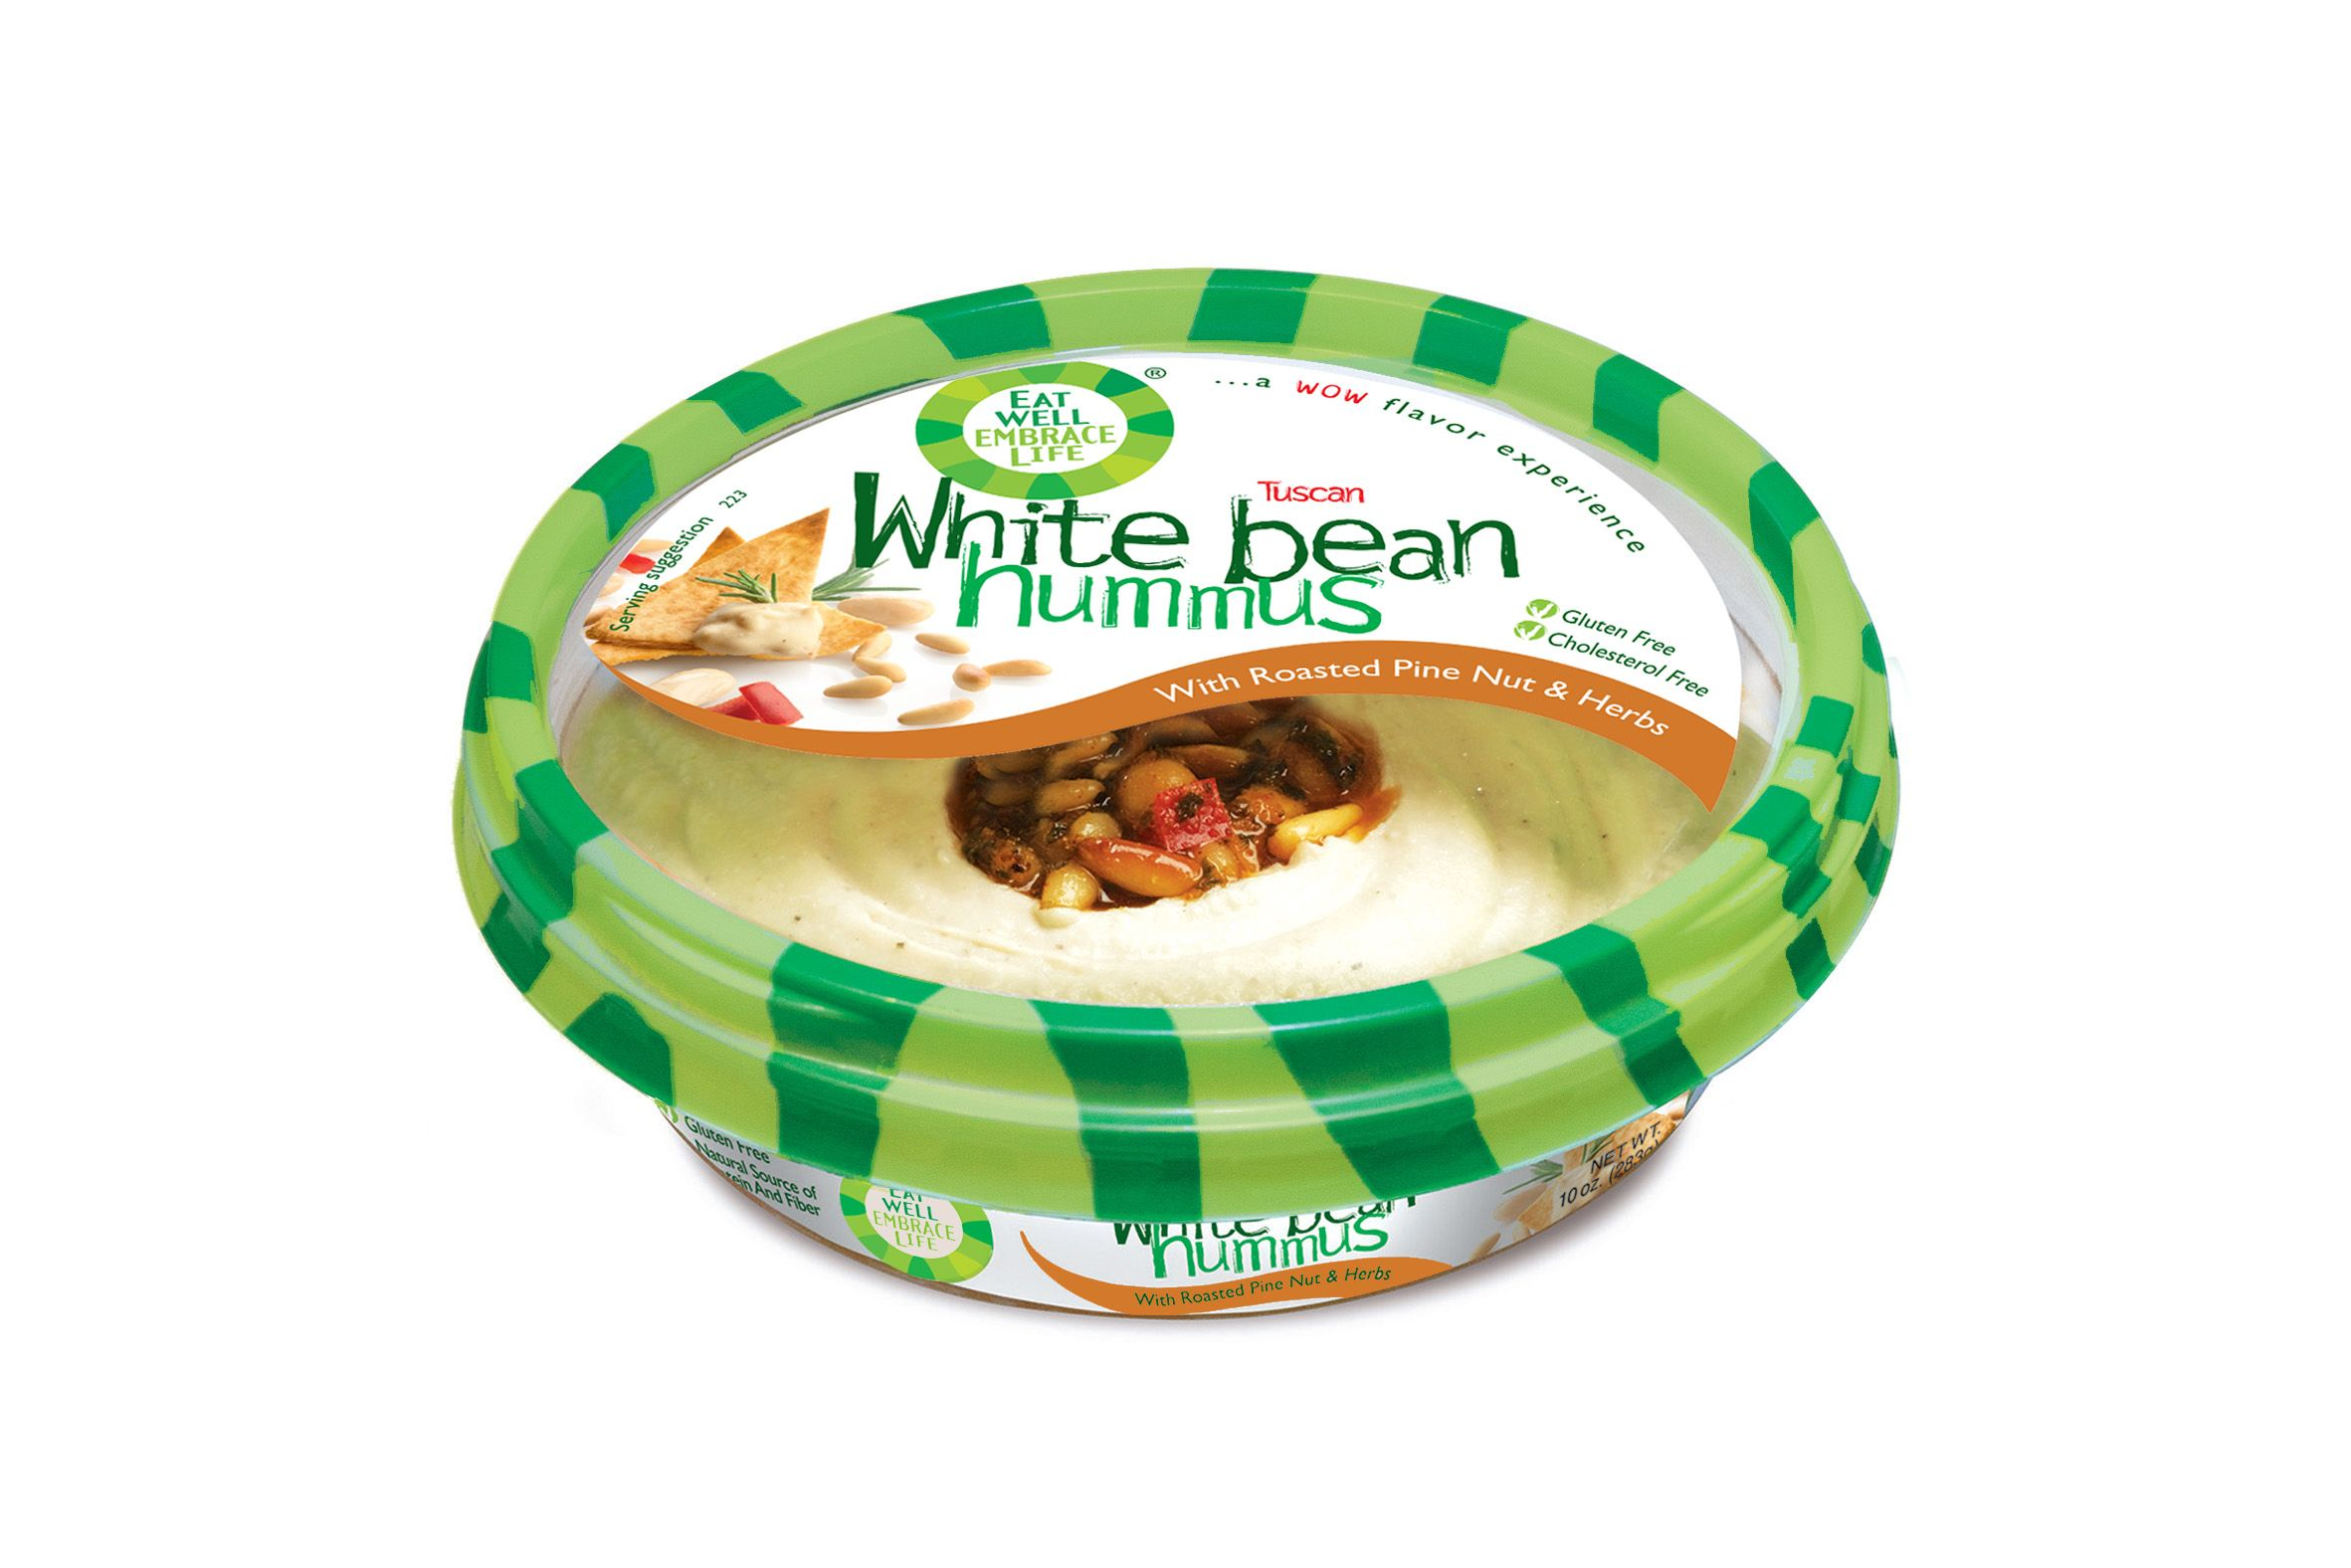 """Eat Well Embrace Life's White Bean Hummus is my favorite hummus flavor!"""